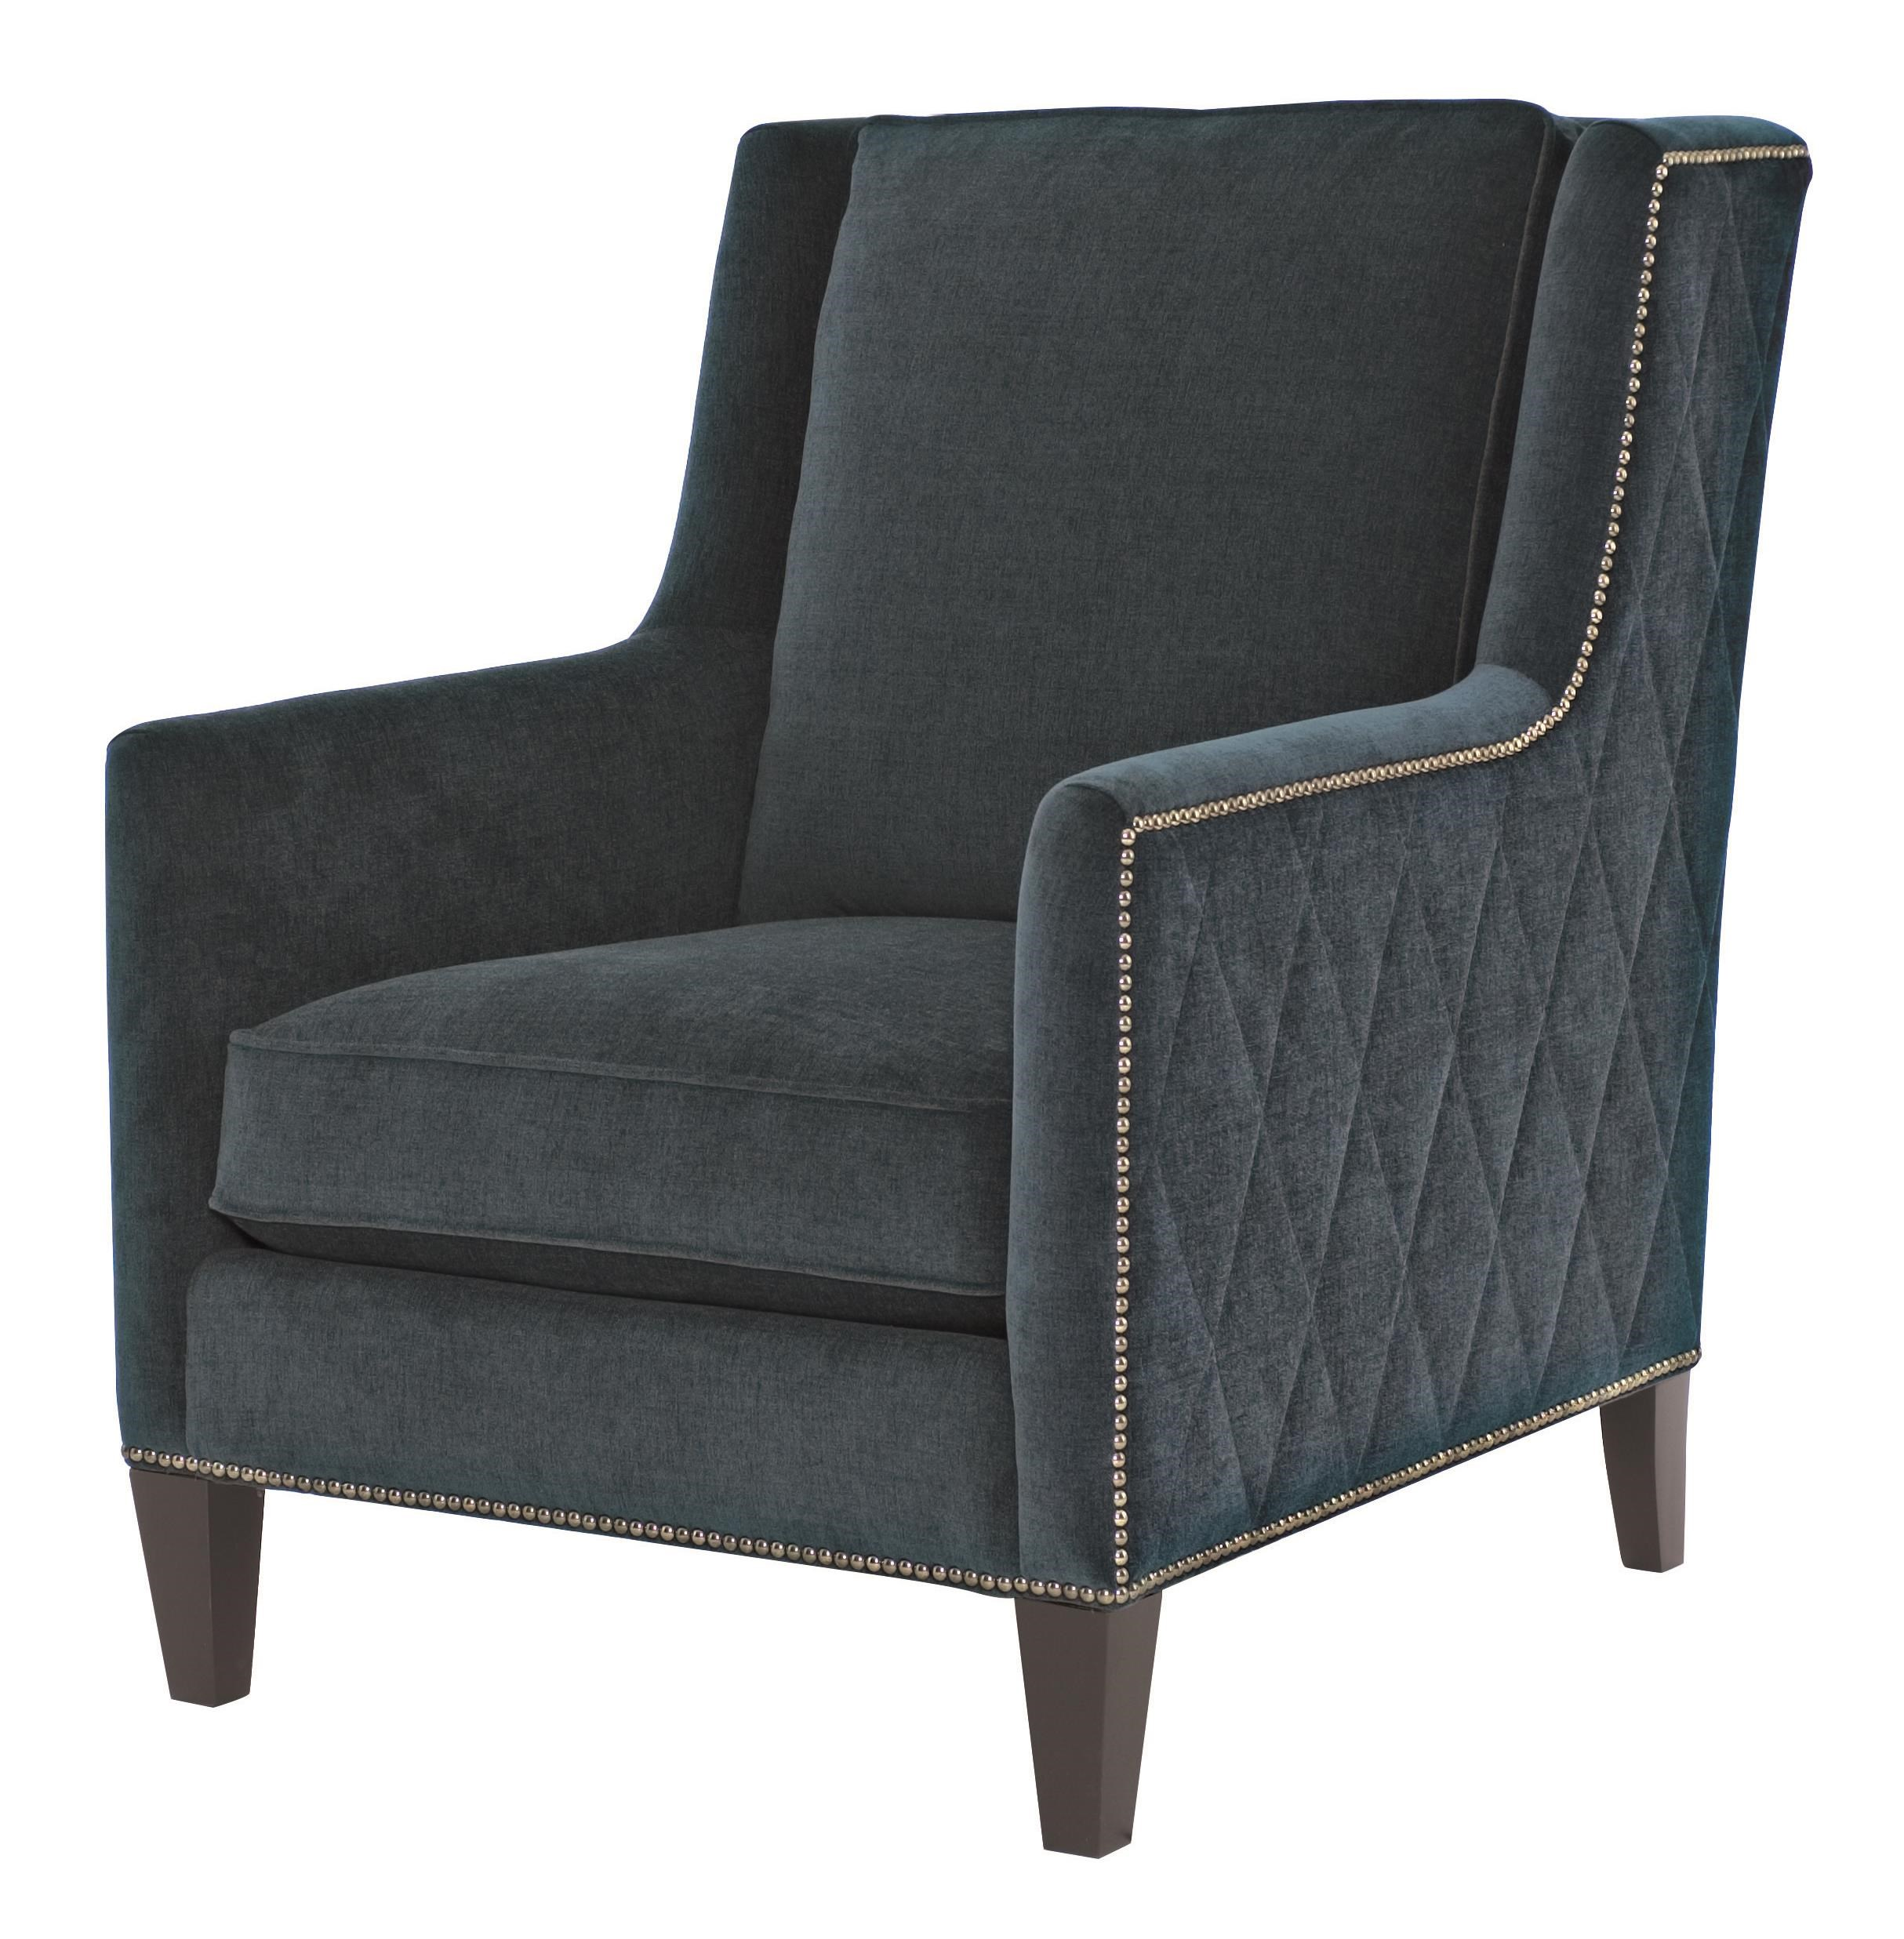 cloth chairs furniture. Bernhardt Upholstered AccentsAlmada Chair Cloth Chairs Furniture